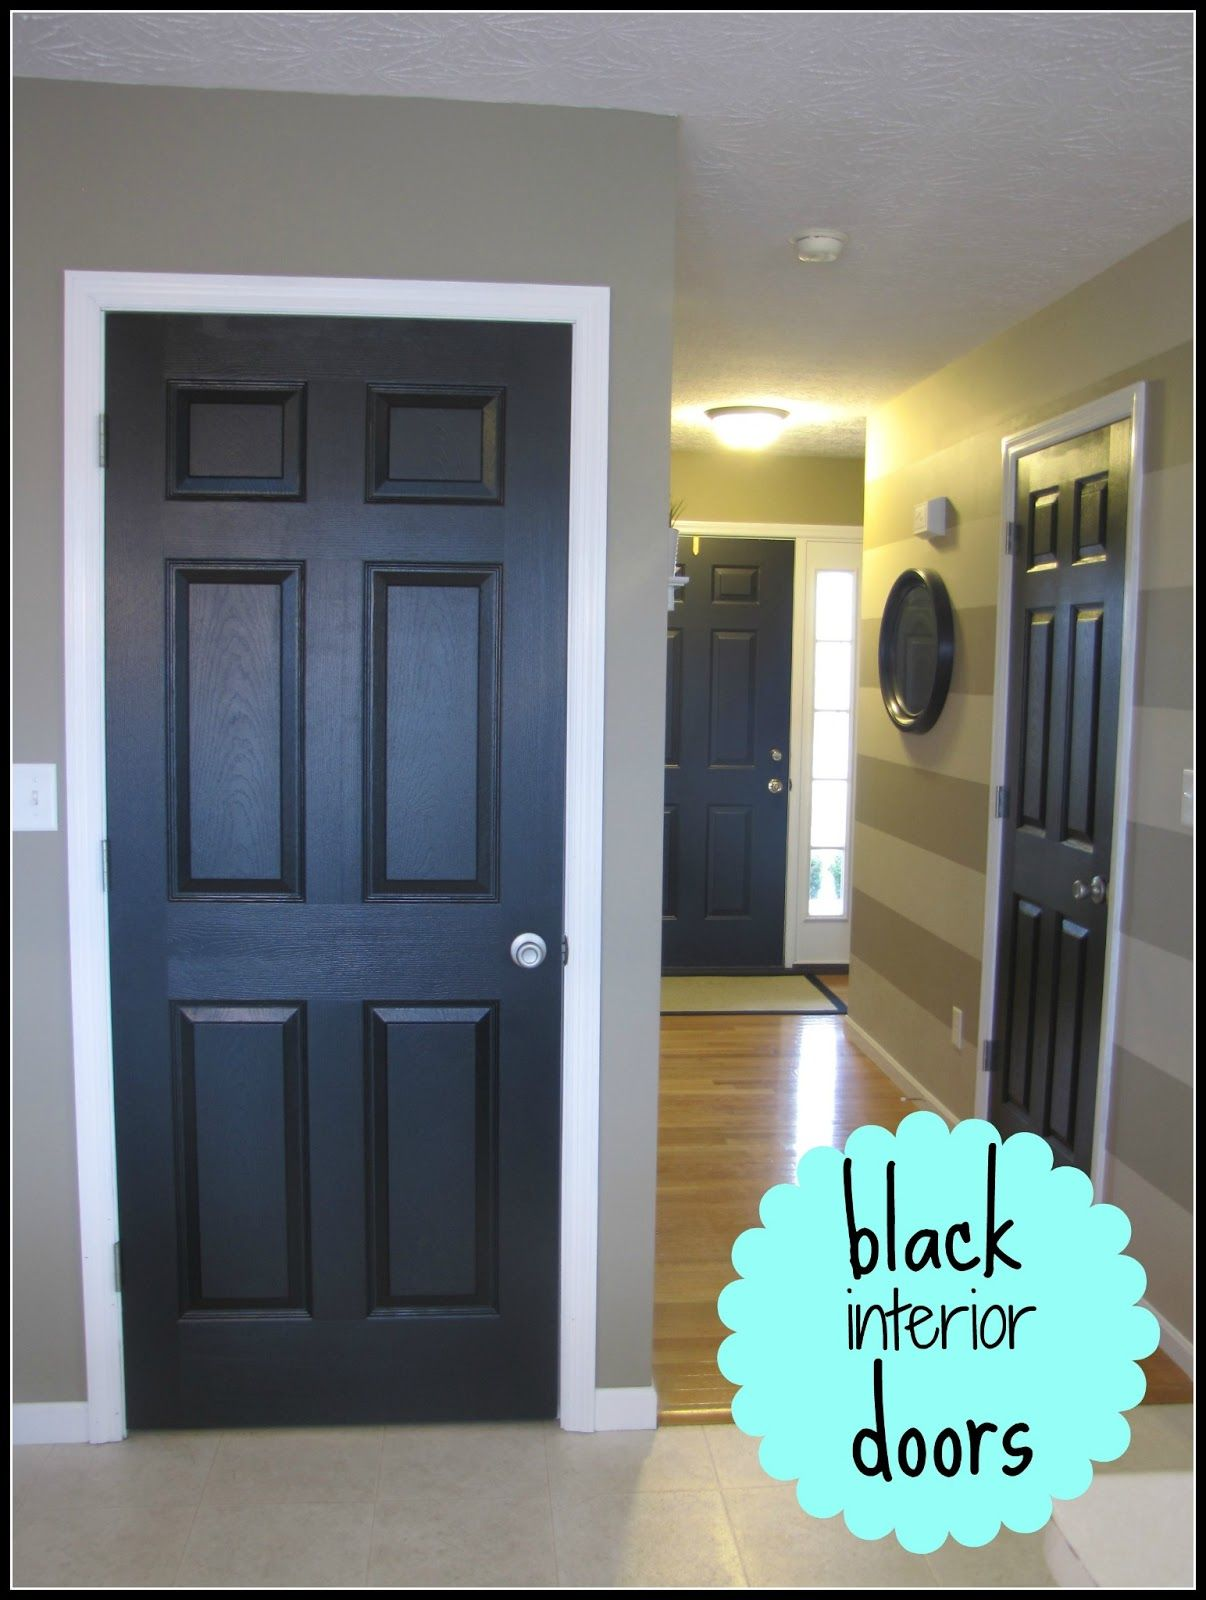 Black Interior Doors And Brushed Nickel Makeover Would Look Great In The Kitchen